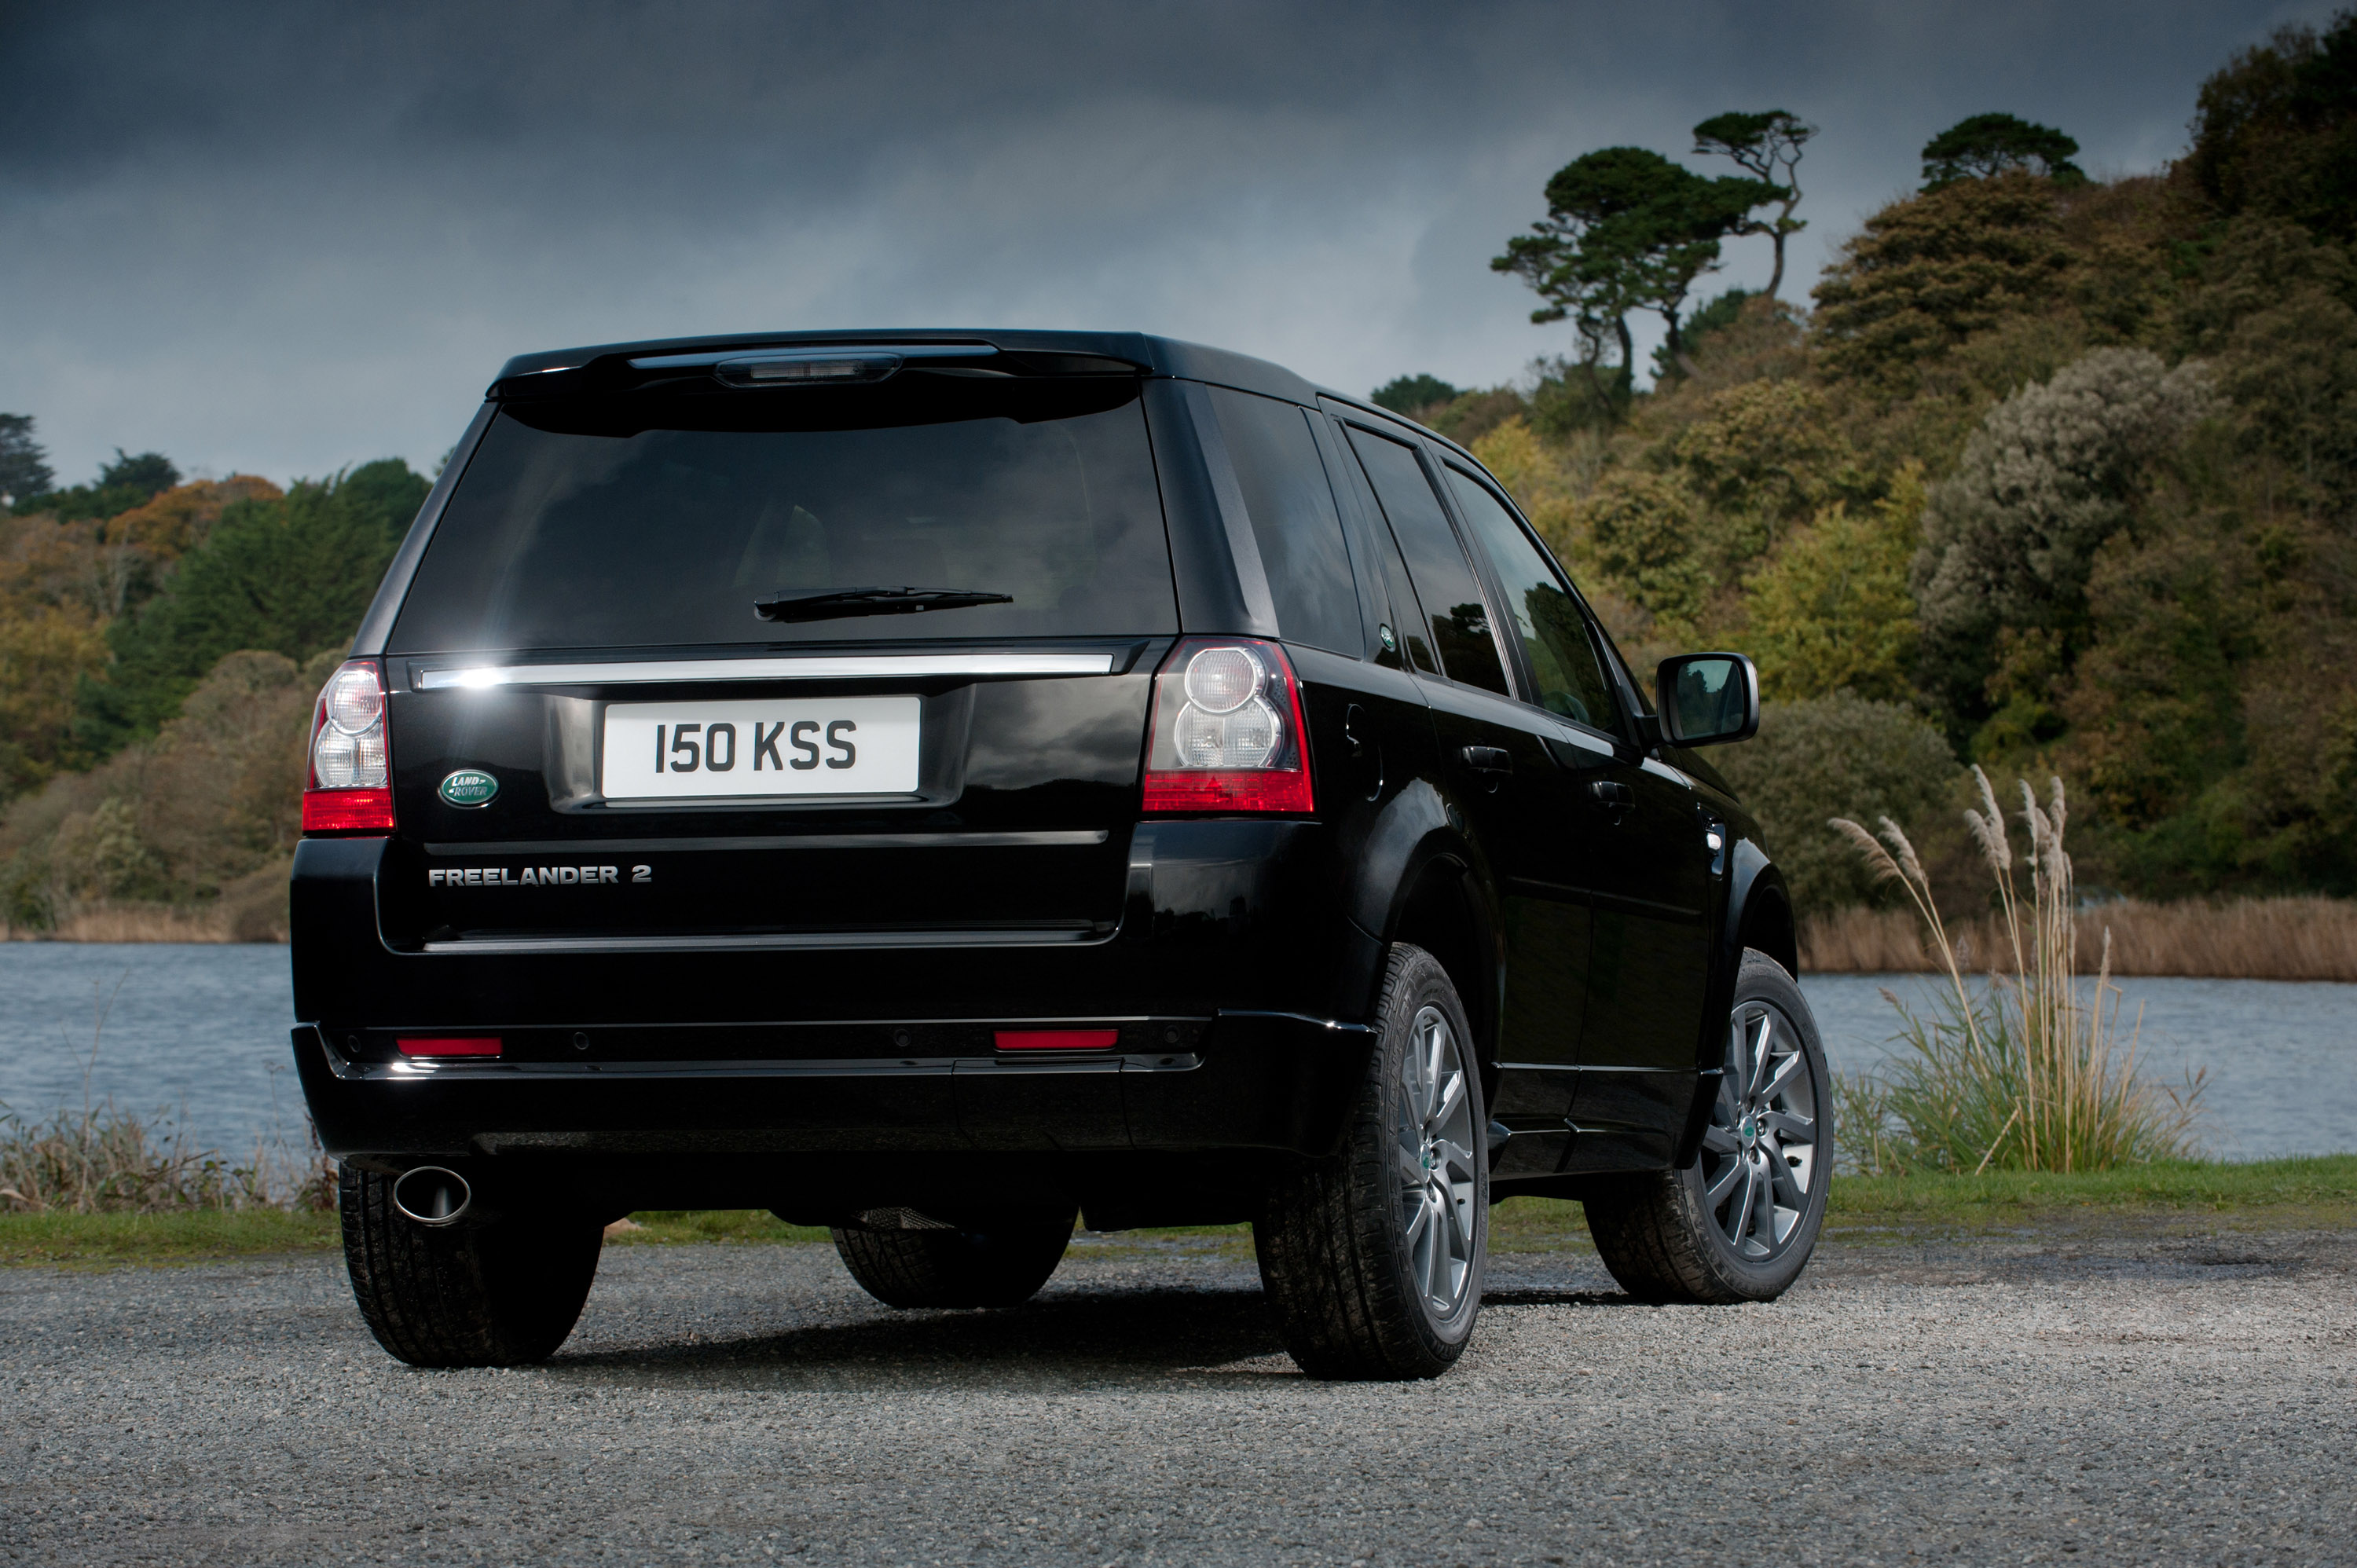 https://www.automobilesreview.com/img/land-rover-freelander-2-sd4-sport-limited-edition/land-rover-freelander-2-sd4-sport-limited-edition-06.jpg